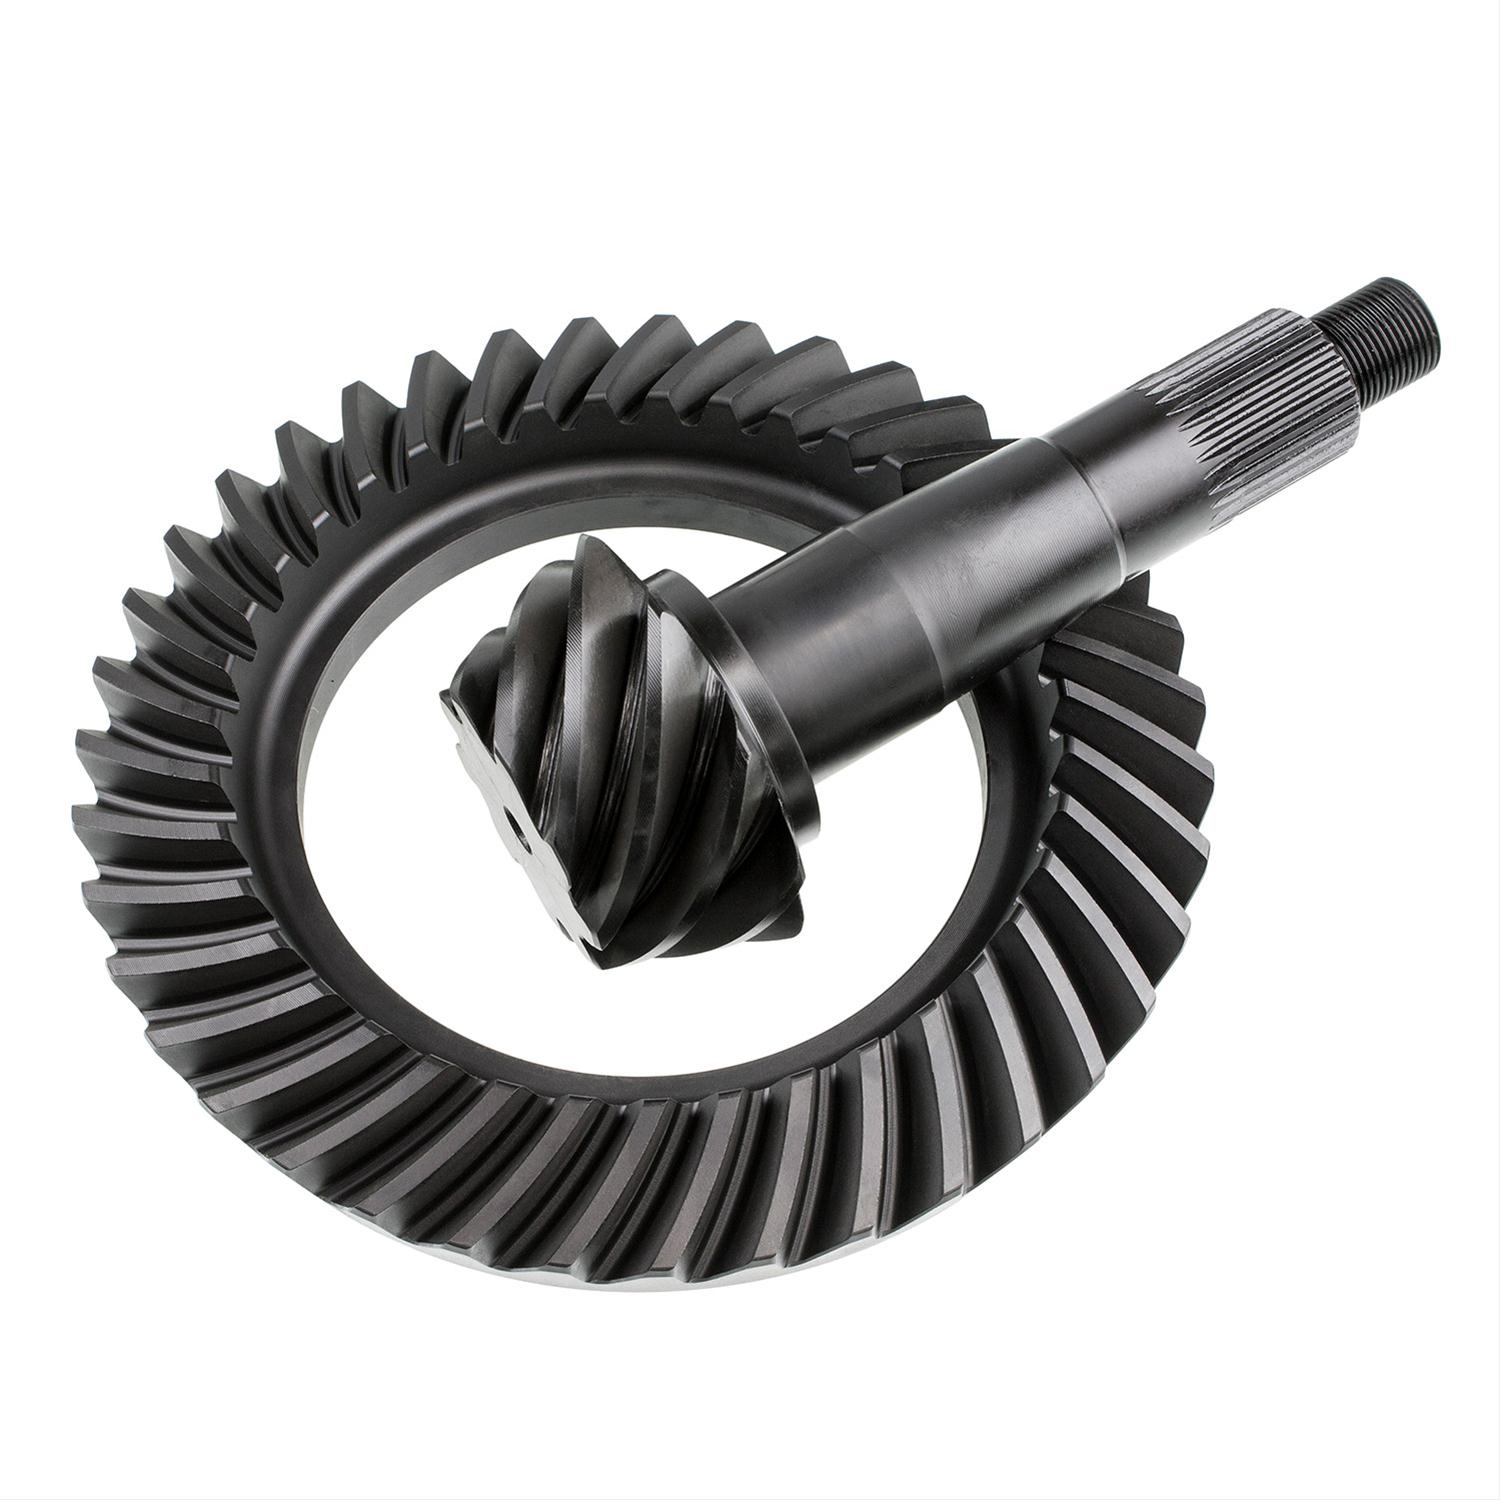 Richmond Gear Pro Gear Ring And Pinion Gears Gm 8 875 Quot Car